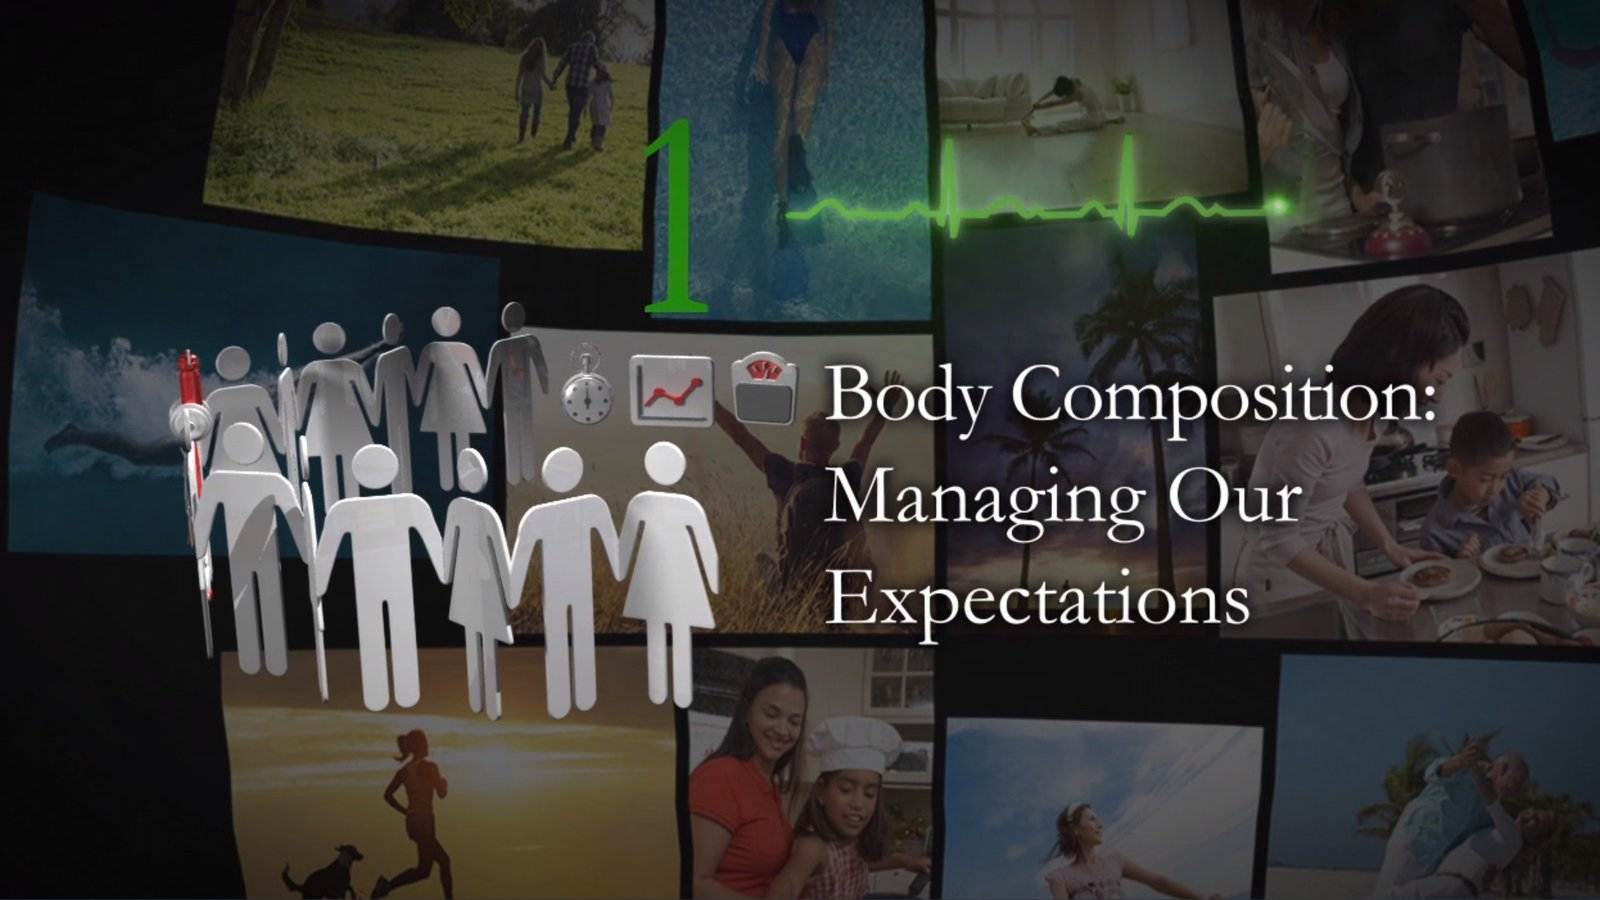 Body Composition: Managing Our Expectations